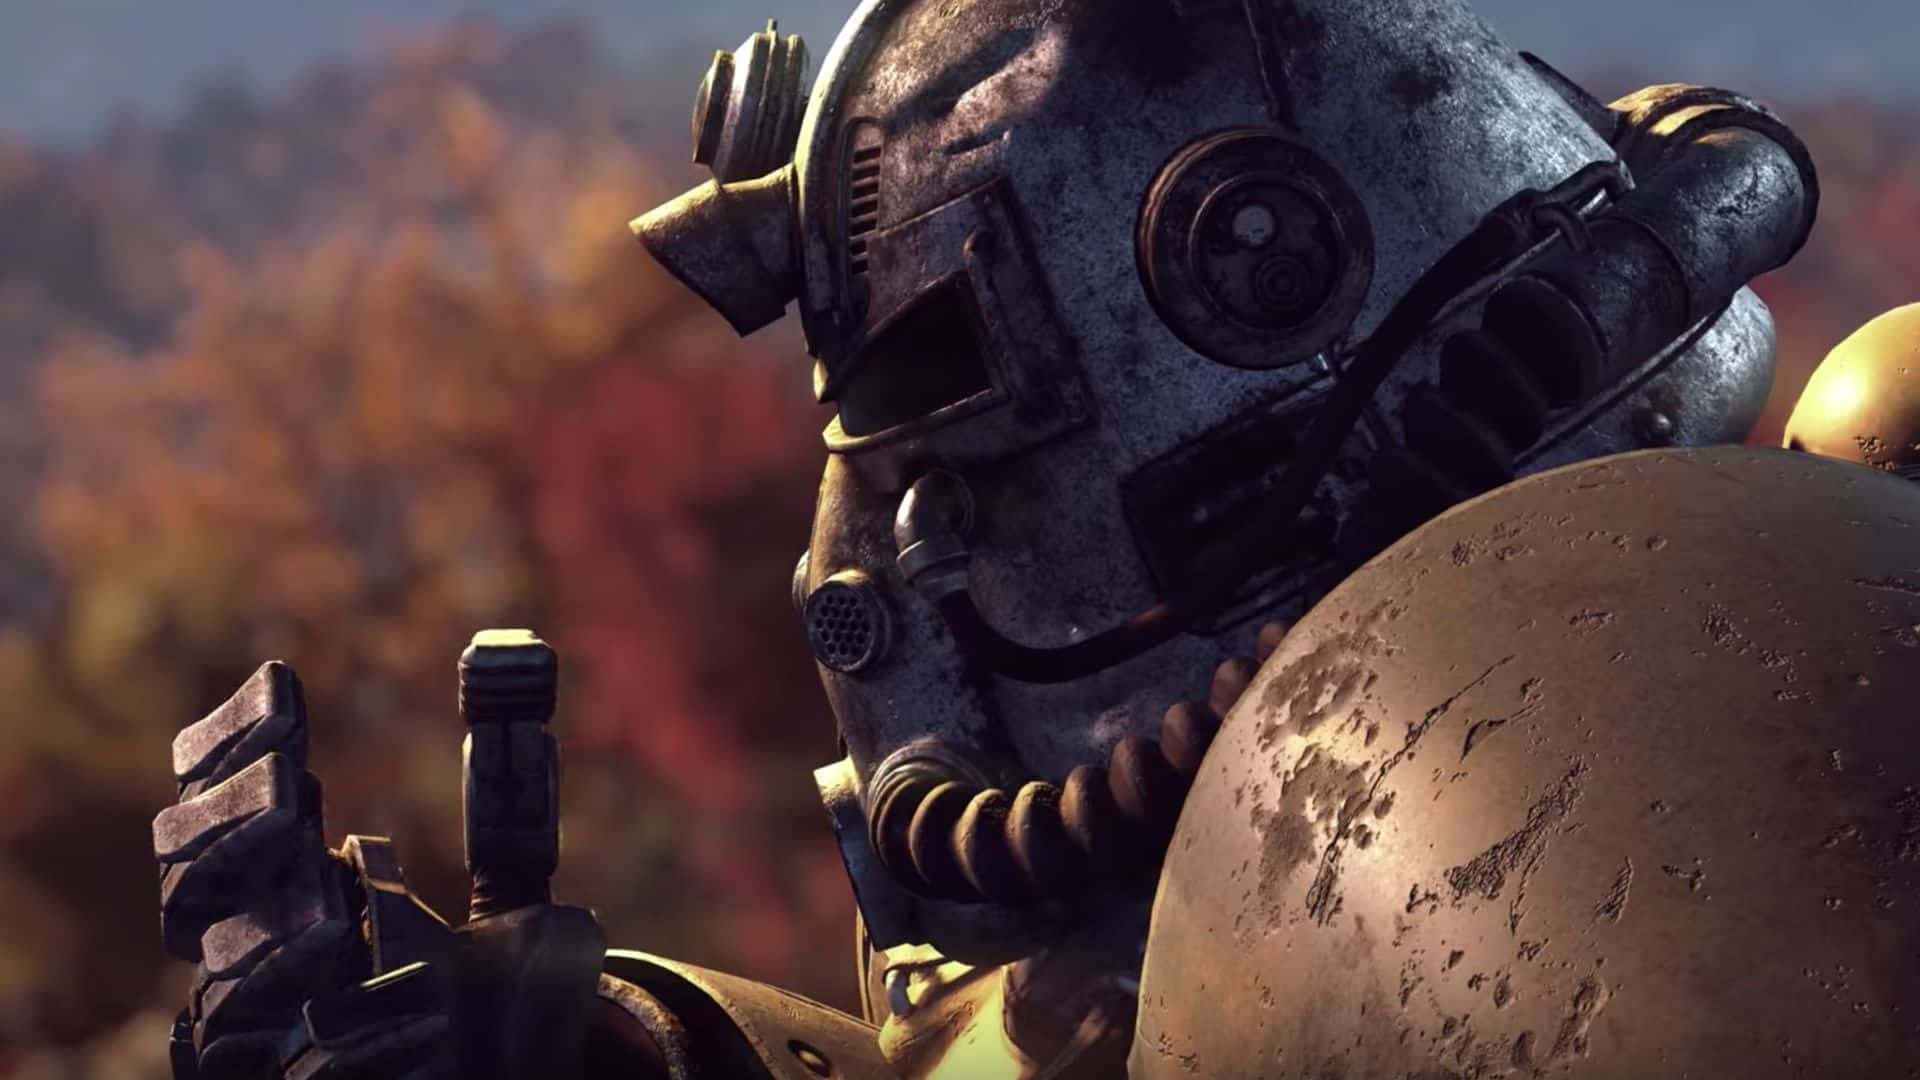 Fallout 76 Online Multiplayer Confirmed; Solo Experience Still Available